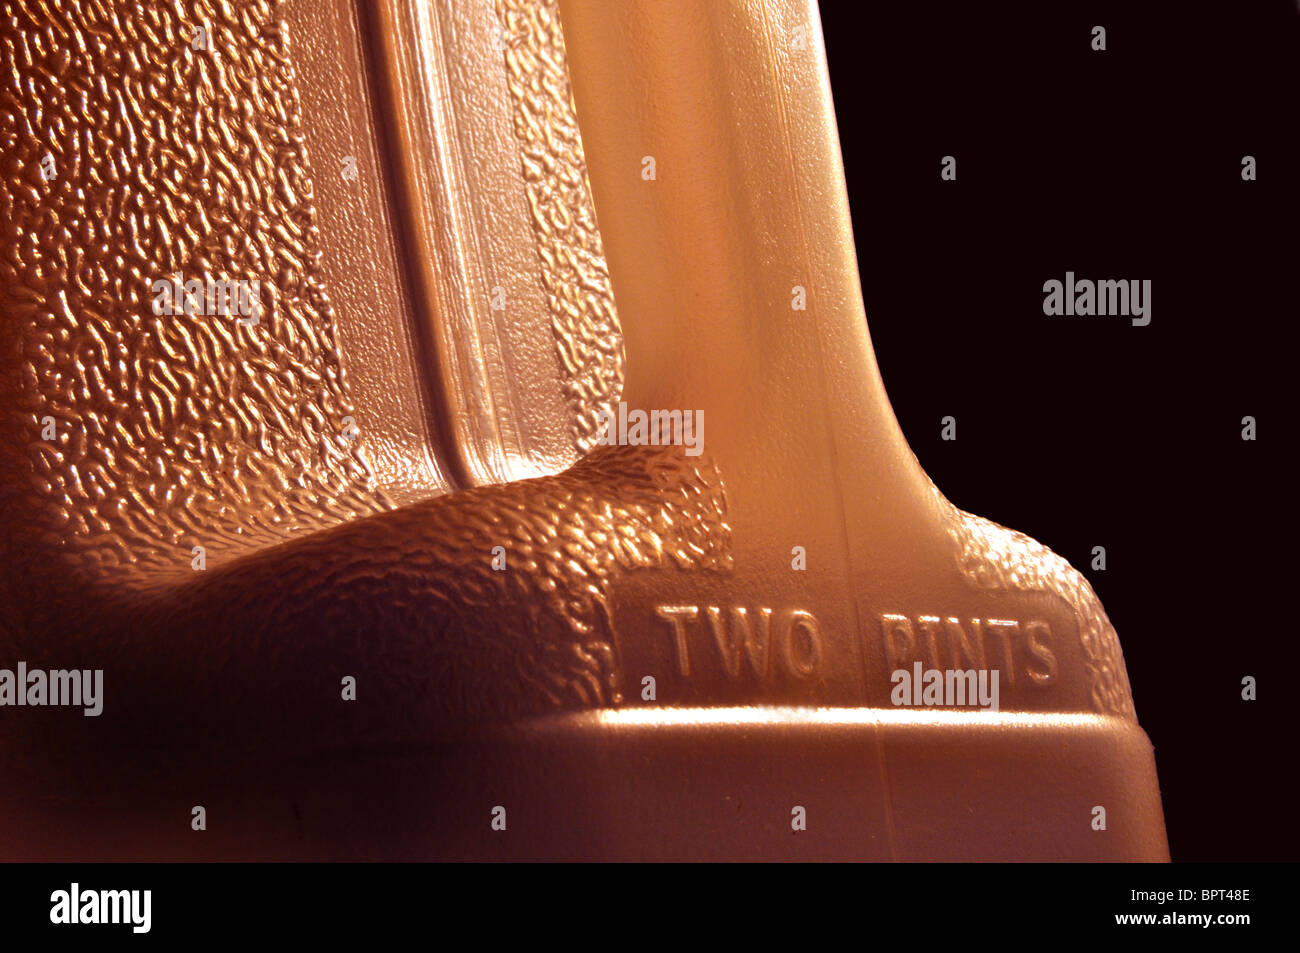 Close up detail of a food container - Stock Image